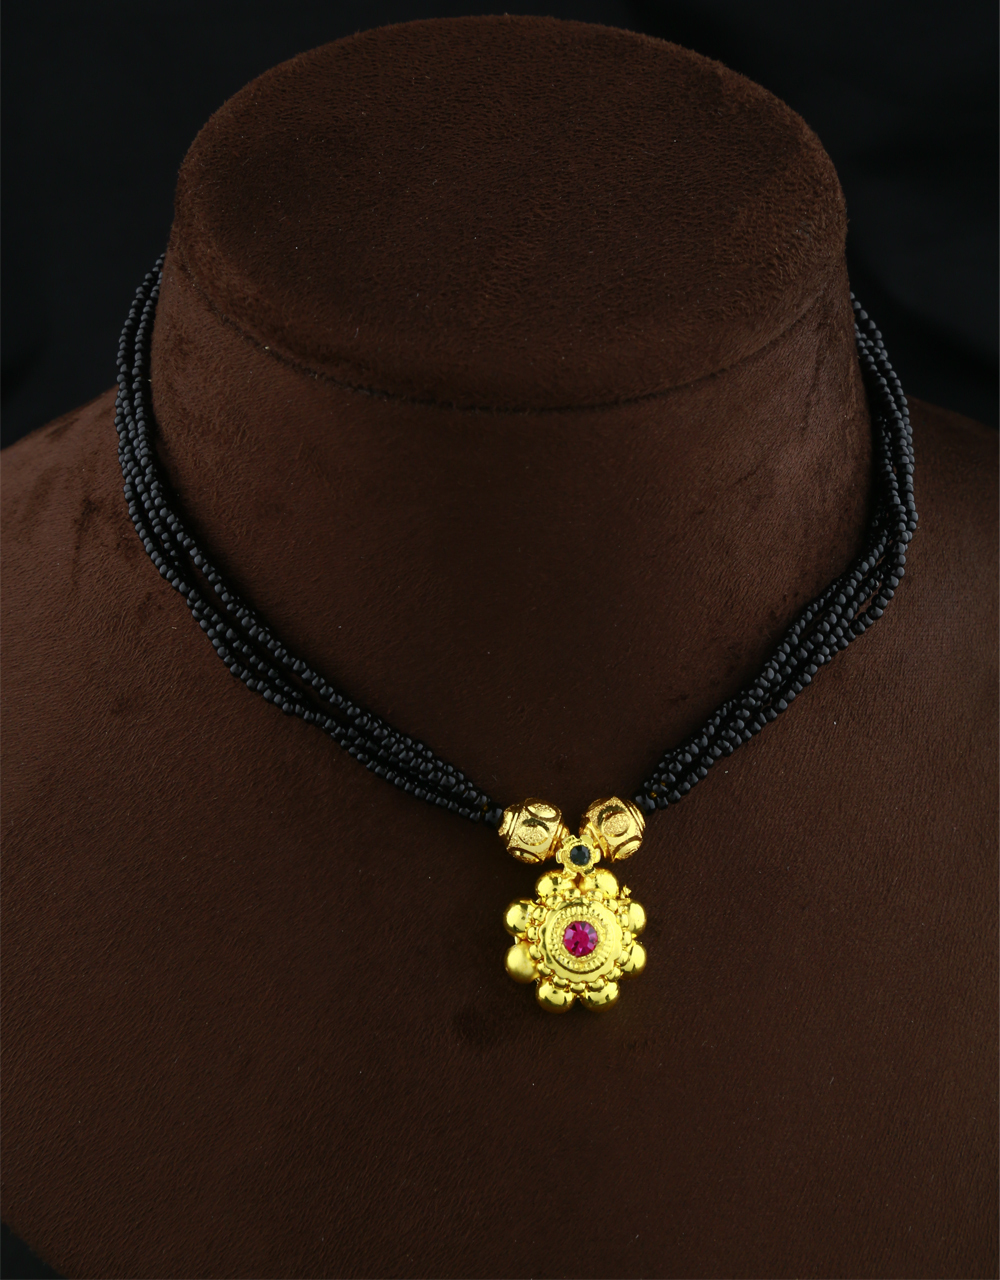 Adorable Gold Tone Adorable Fancy Thushi Necklace|Black Beads Thushi Mangalsutra For Women & Girls